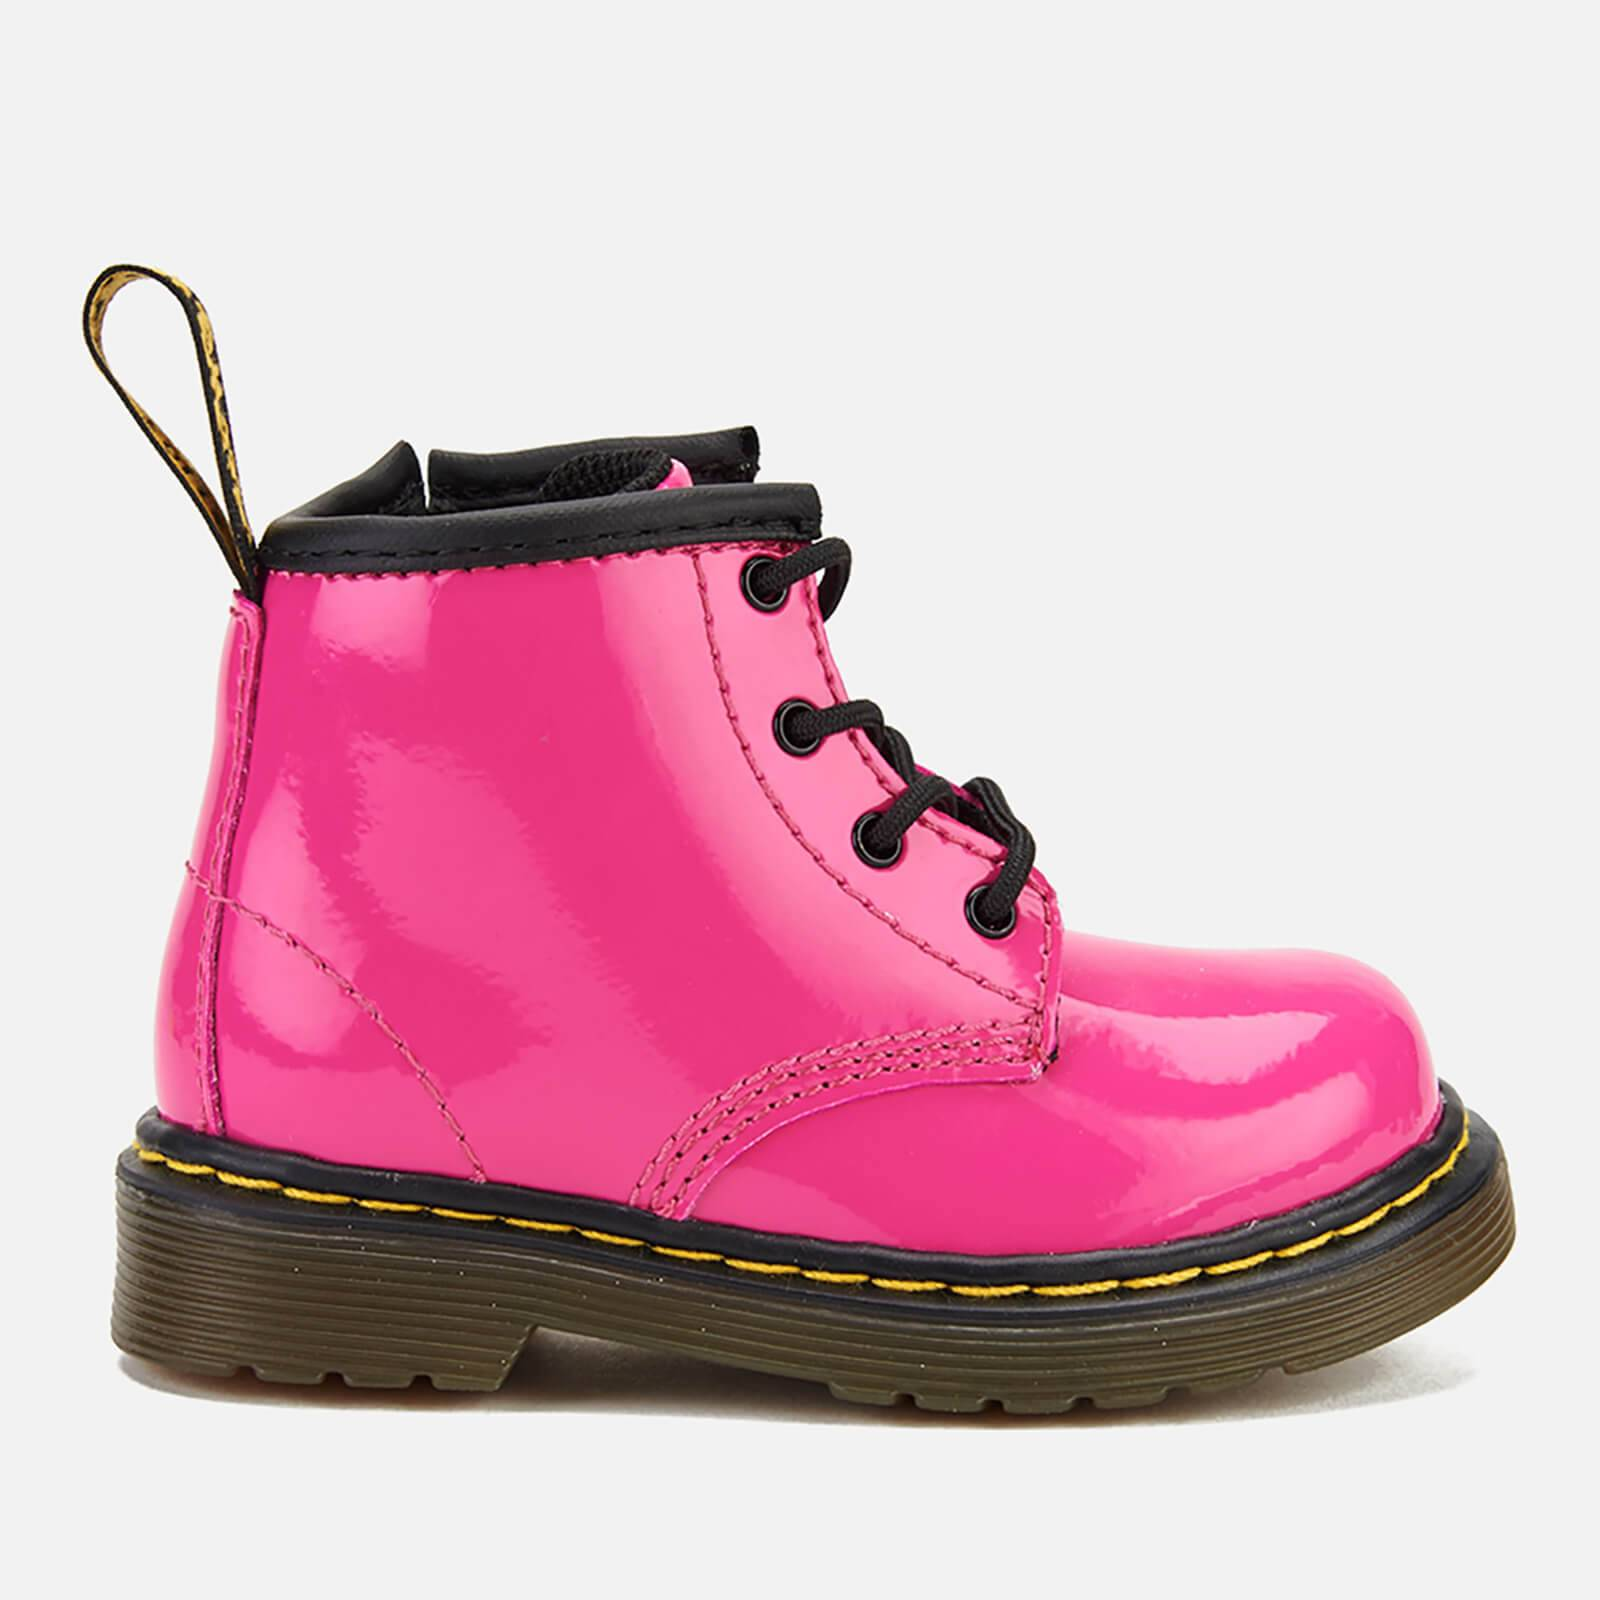 Dr. Martens Toddlers' 1460 I Patent Lamper Lace Up Boots - Hot Pink - UK 3 Toddler